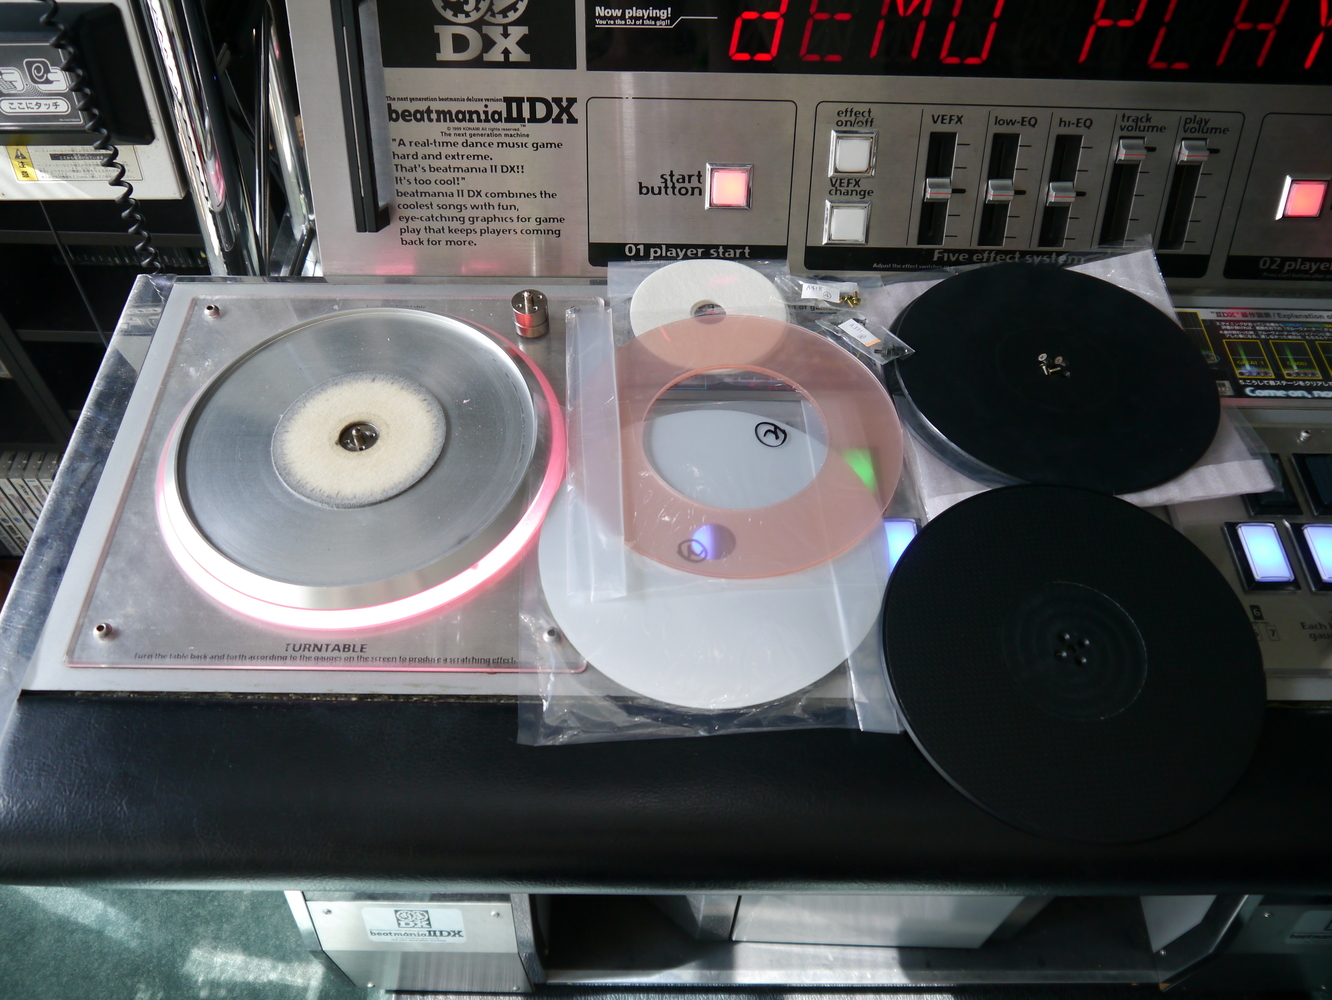 IIDX turntable parts spread out on the control deck